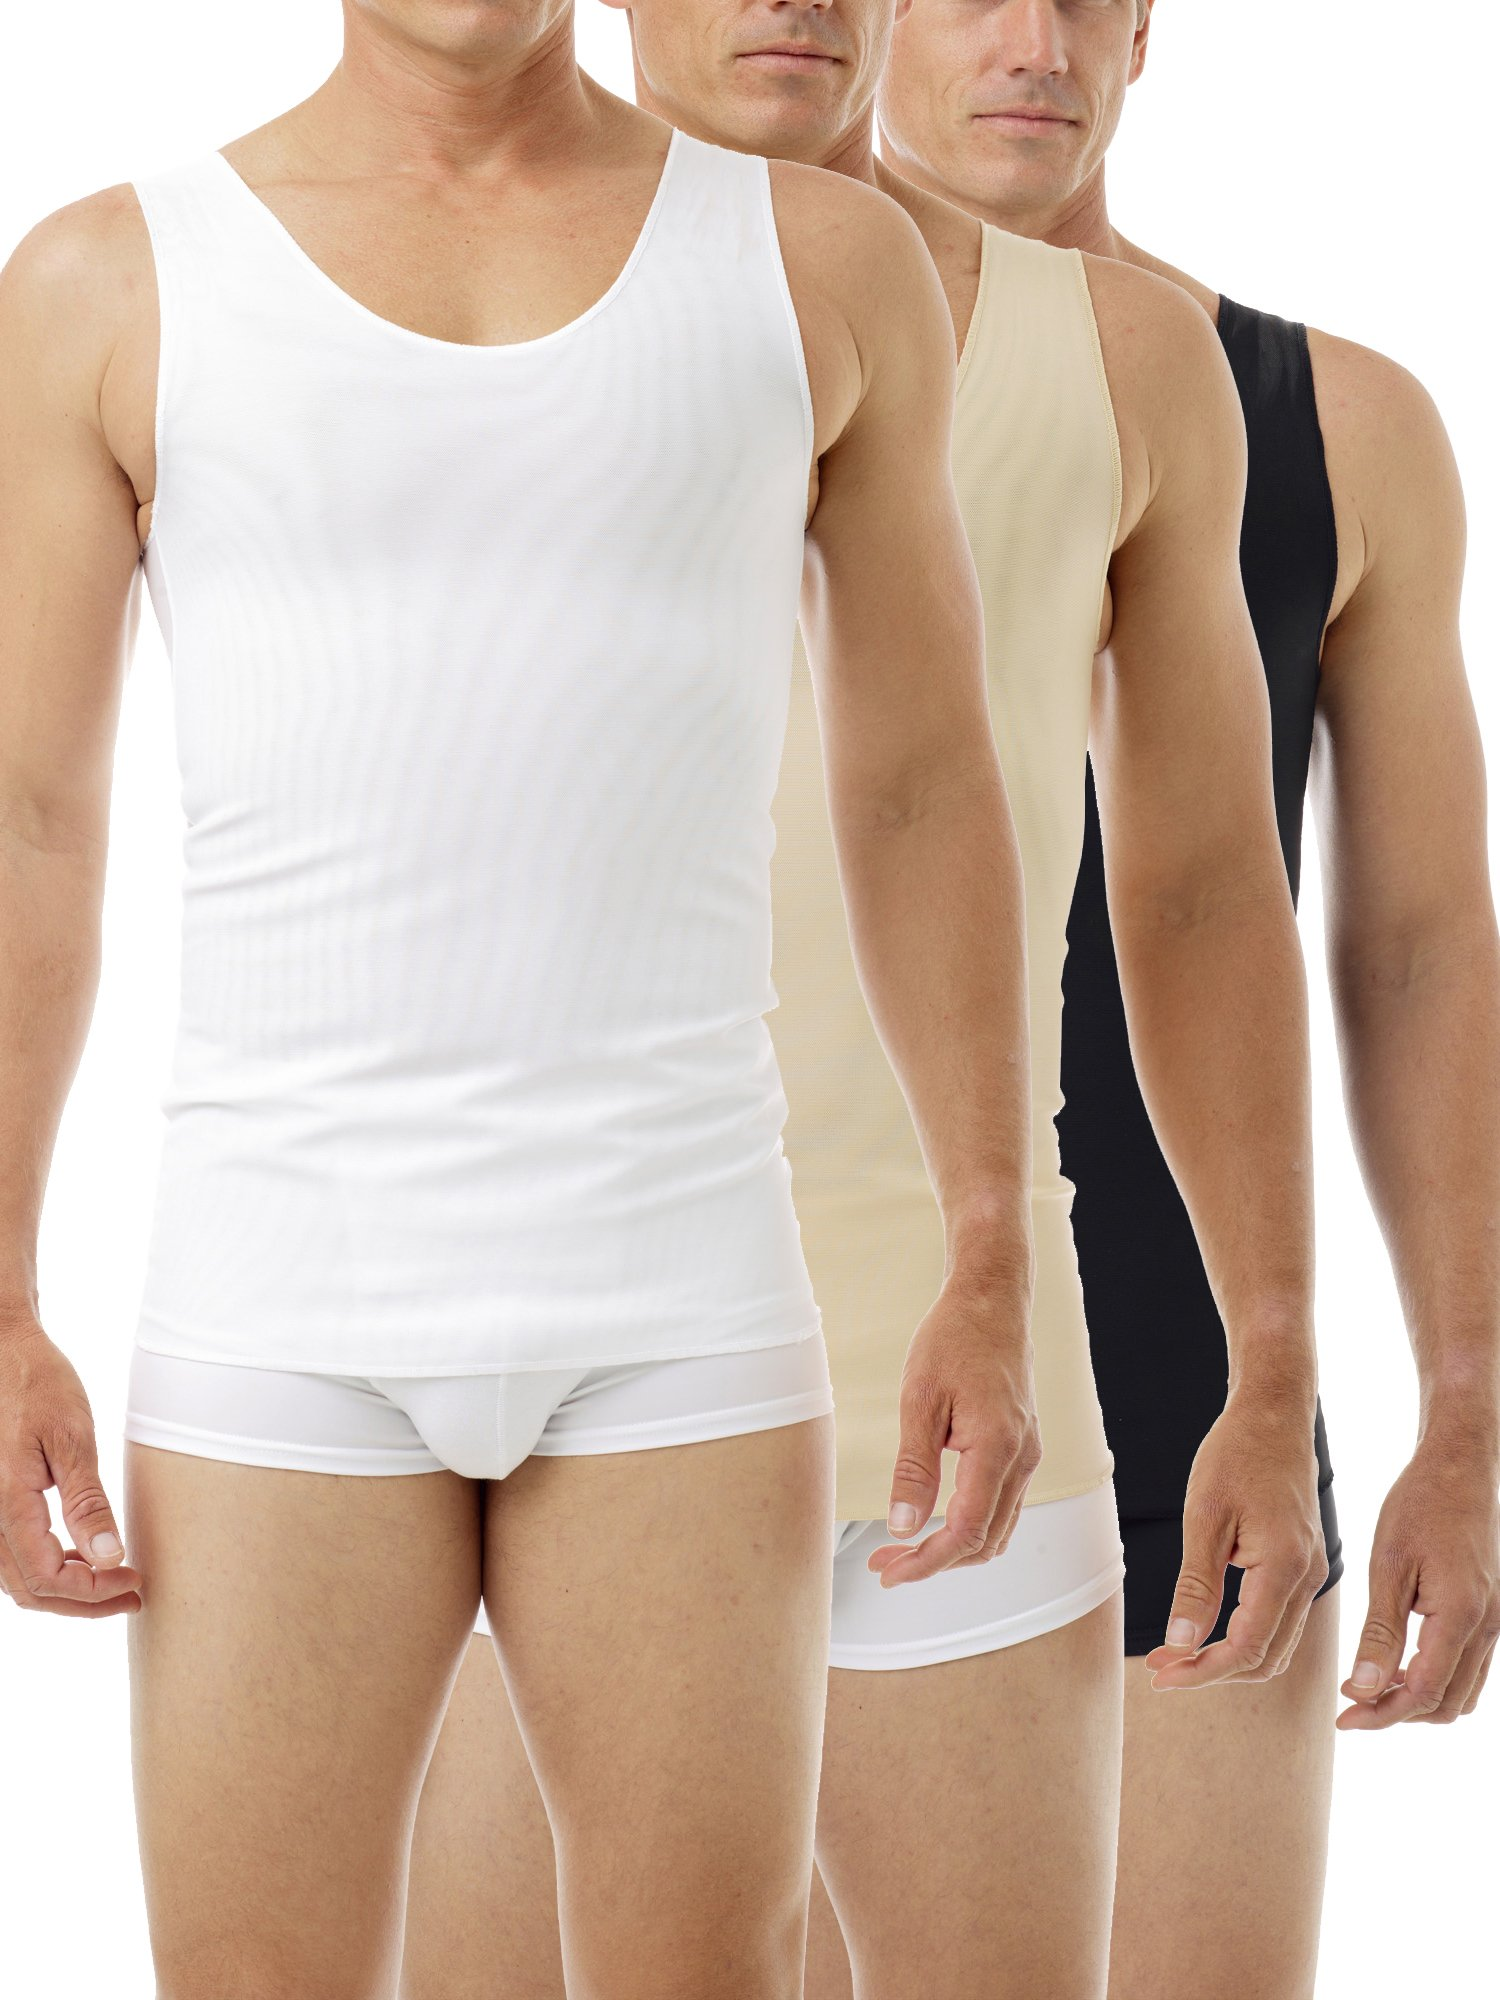 Underworks FTM Gynecomastia Ultimate Chest Binder Tank 997 - Black-Nude-White X-Small